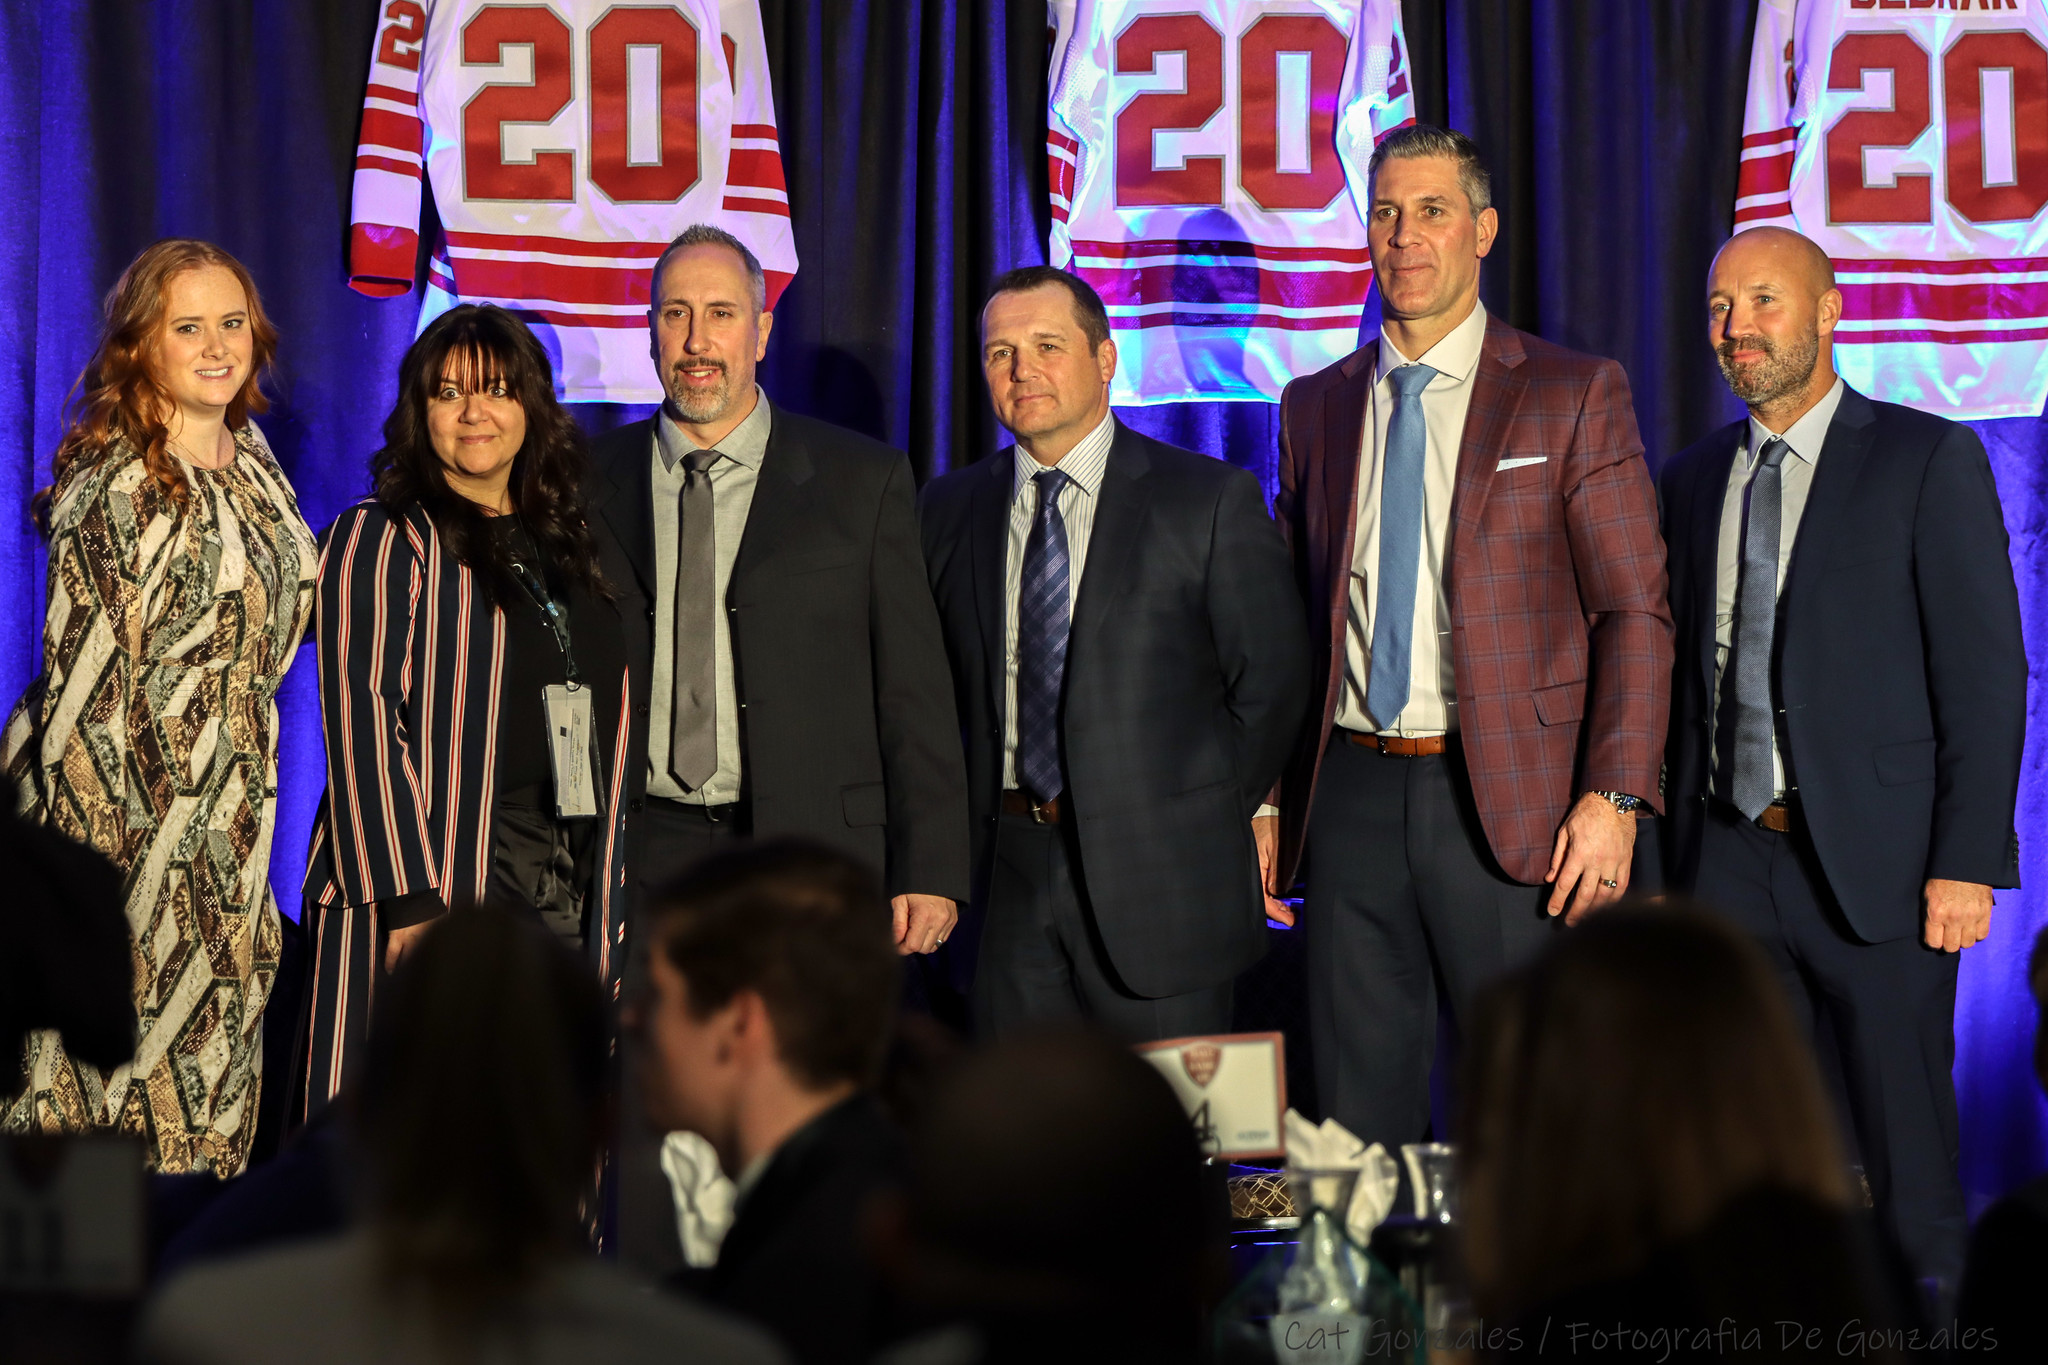 ECHL Hall of Fame Induction